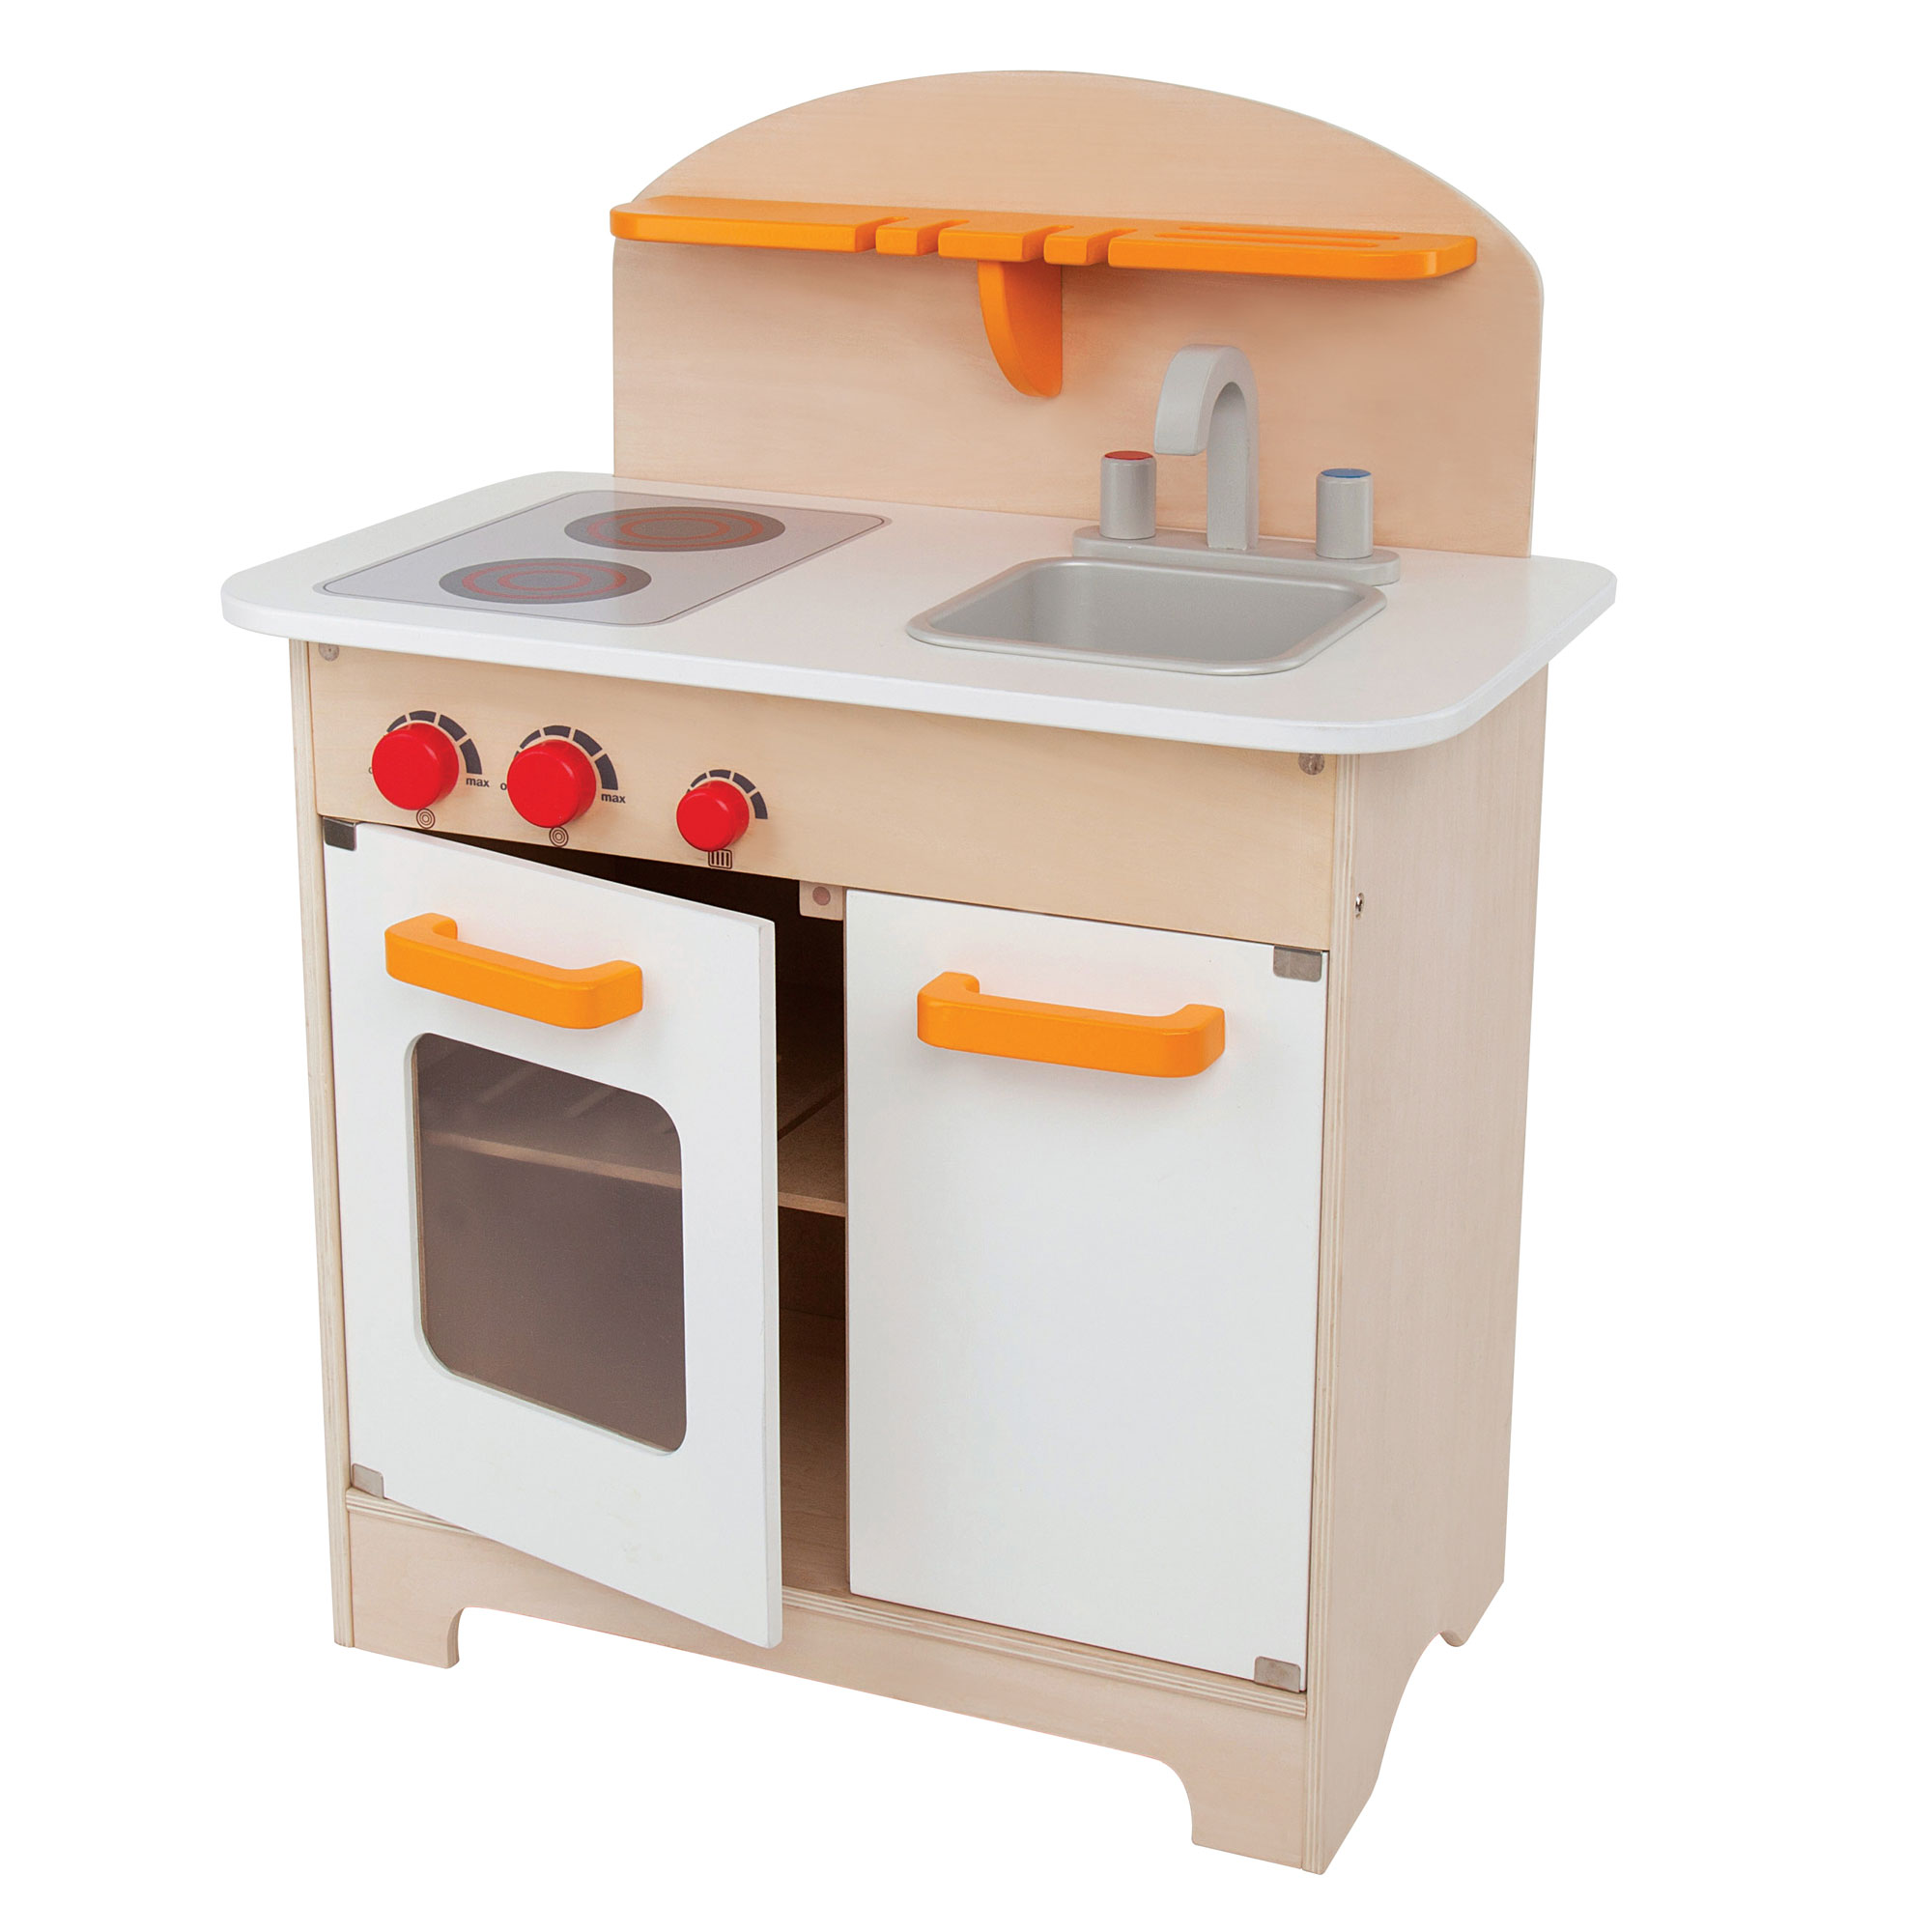 Hape Gourmet Kitchen Toddler & Kids Wooden Play Pretend Cooking ...